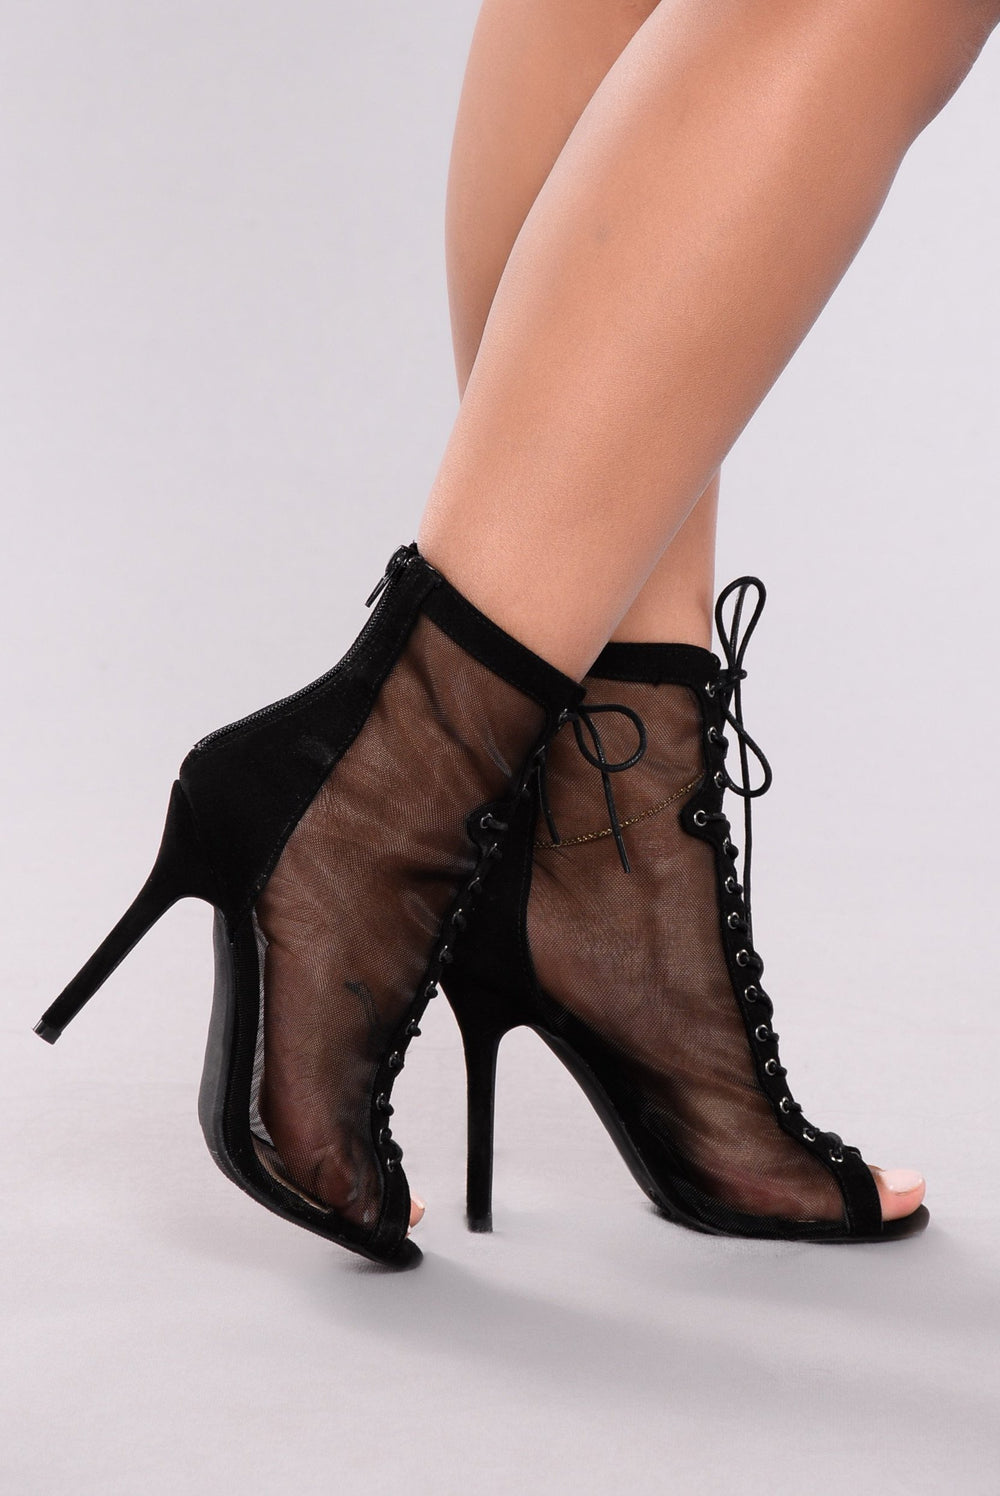 Breezy Mesh Lace Up Bootie - Black